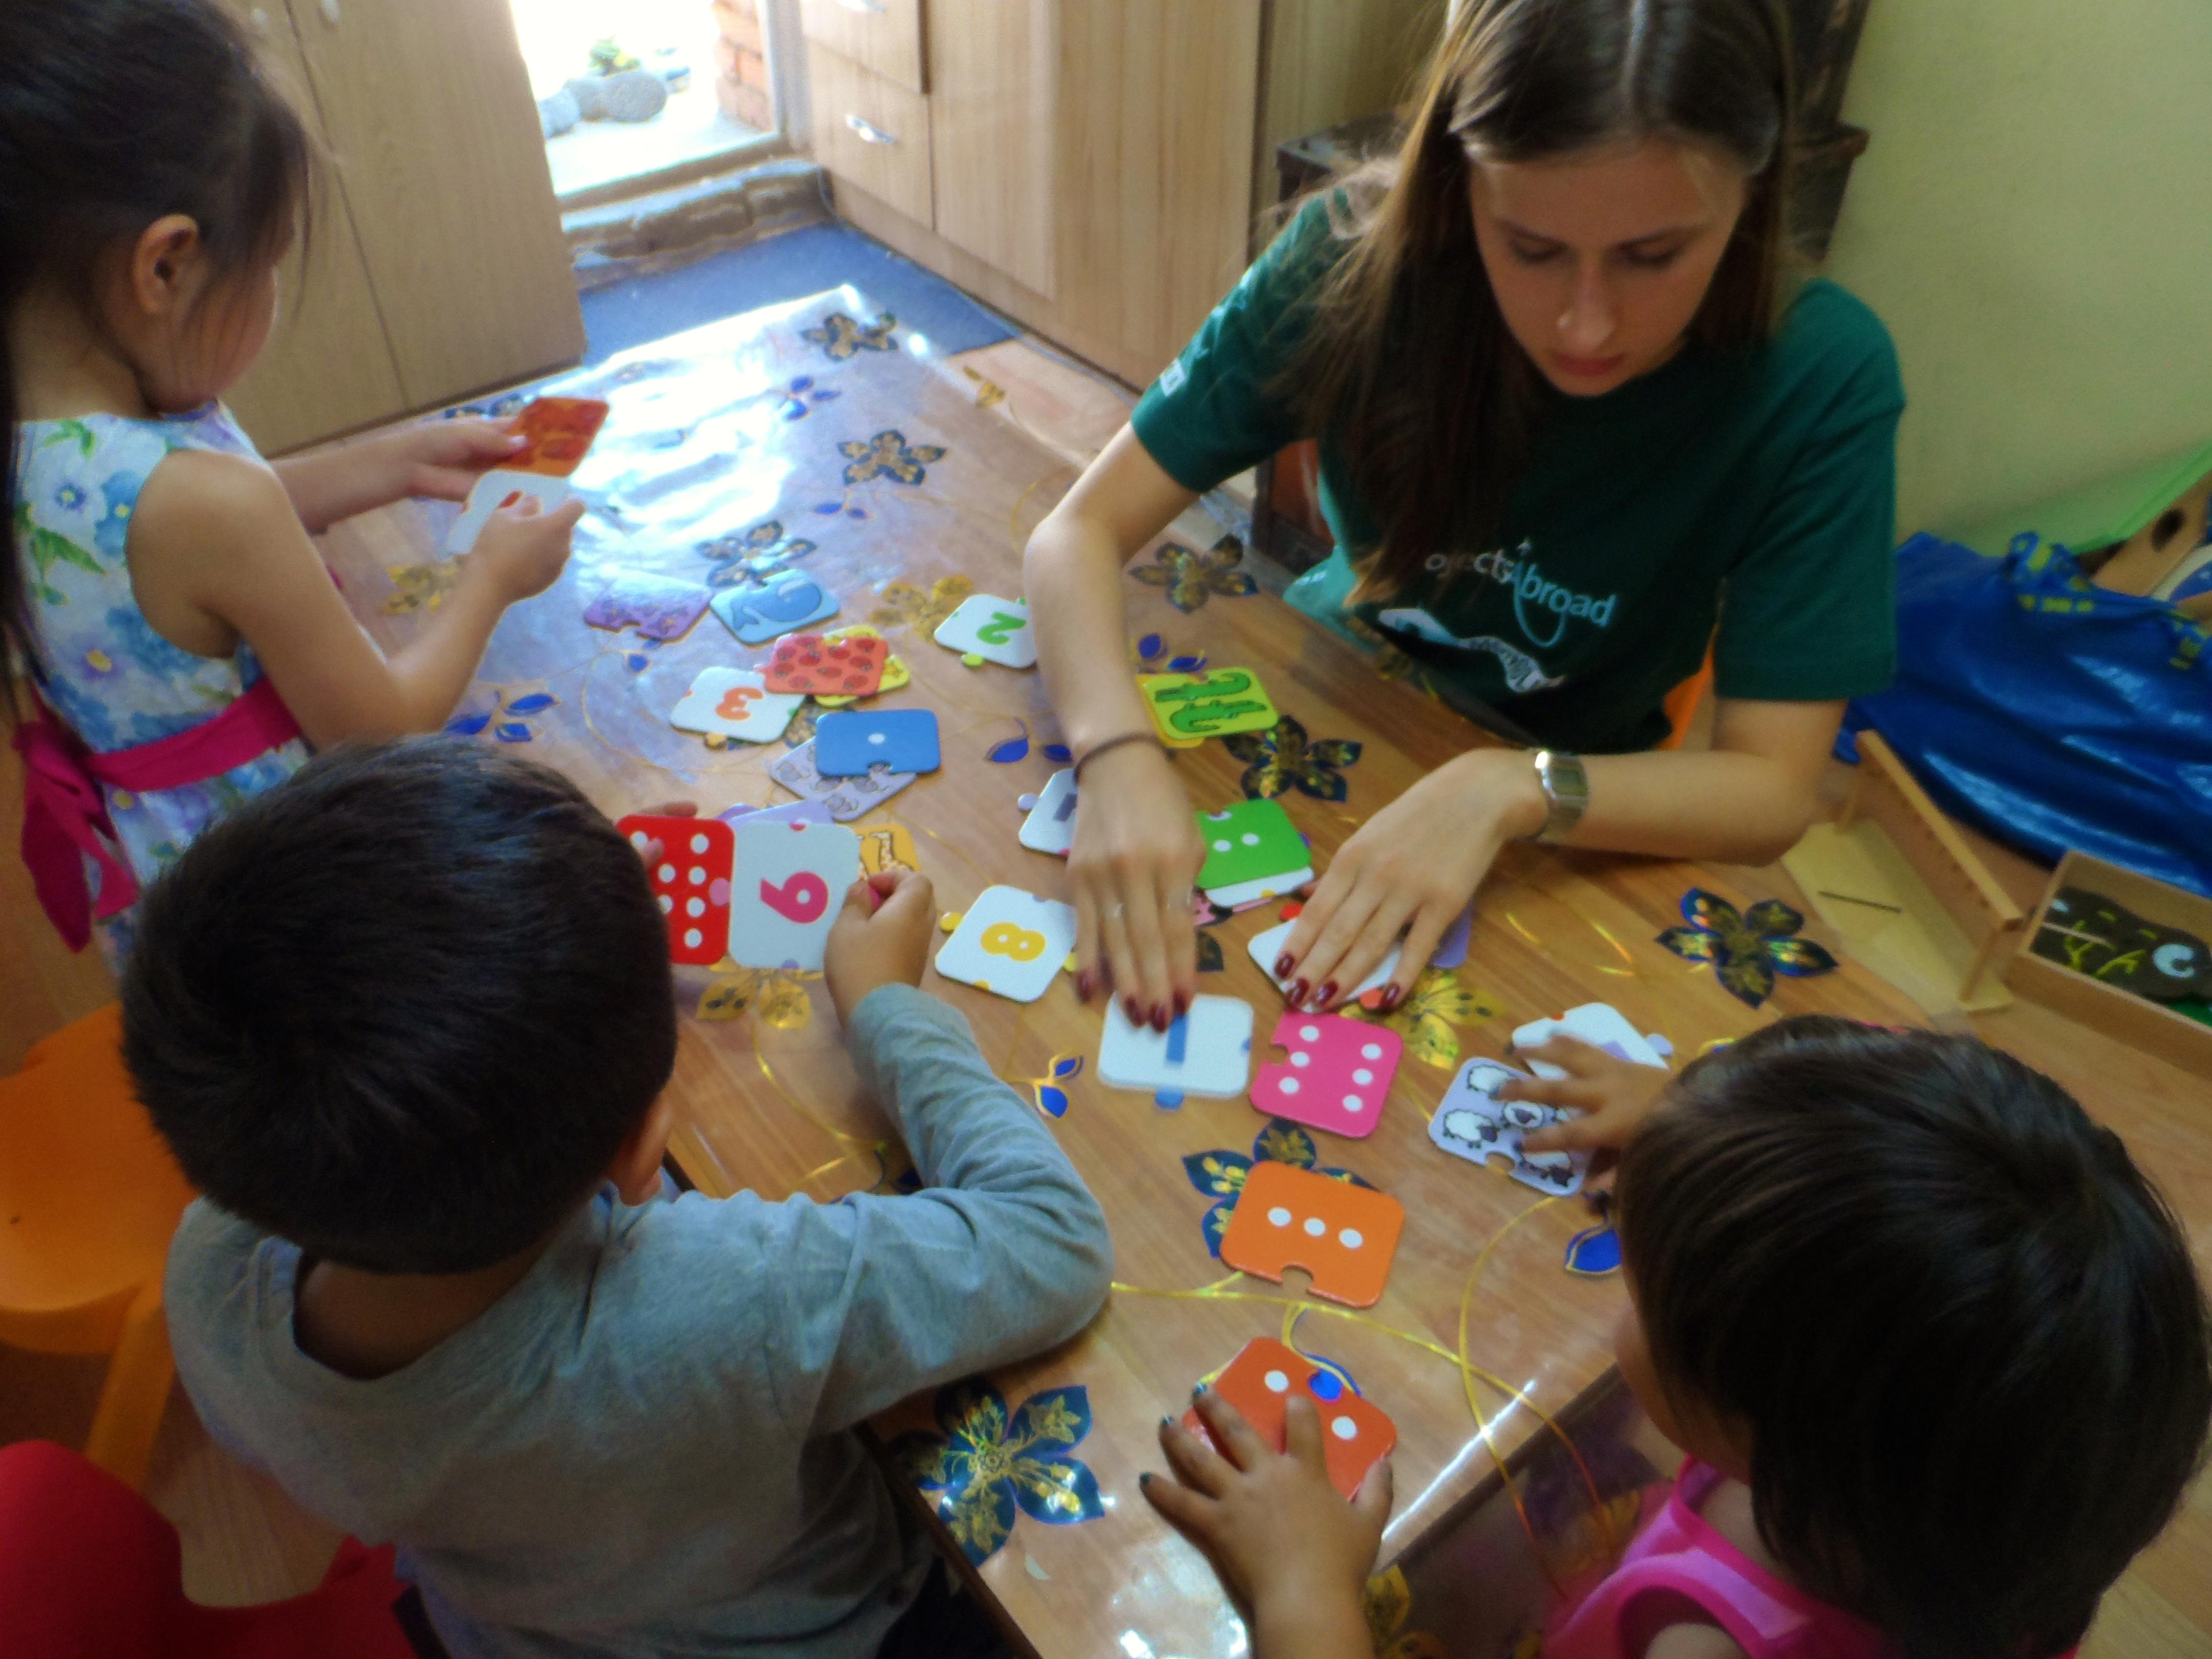 Projects Abroad volunteer working with children in Mongolia helps a group of children with mathematic skills at a care centre.